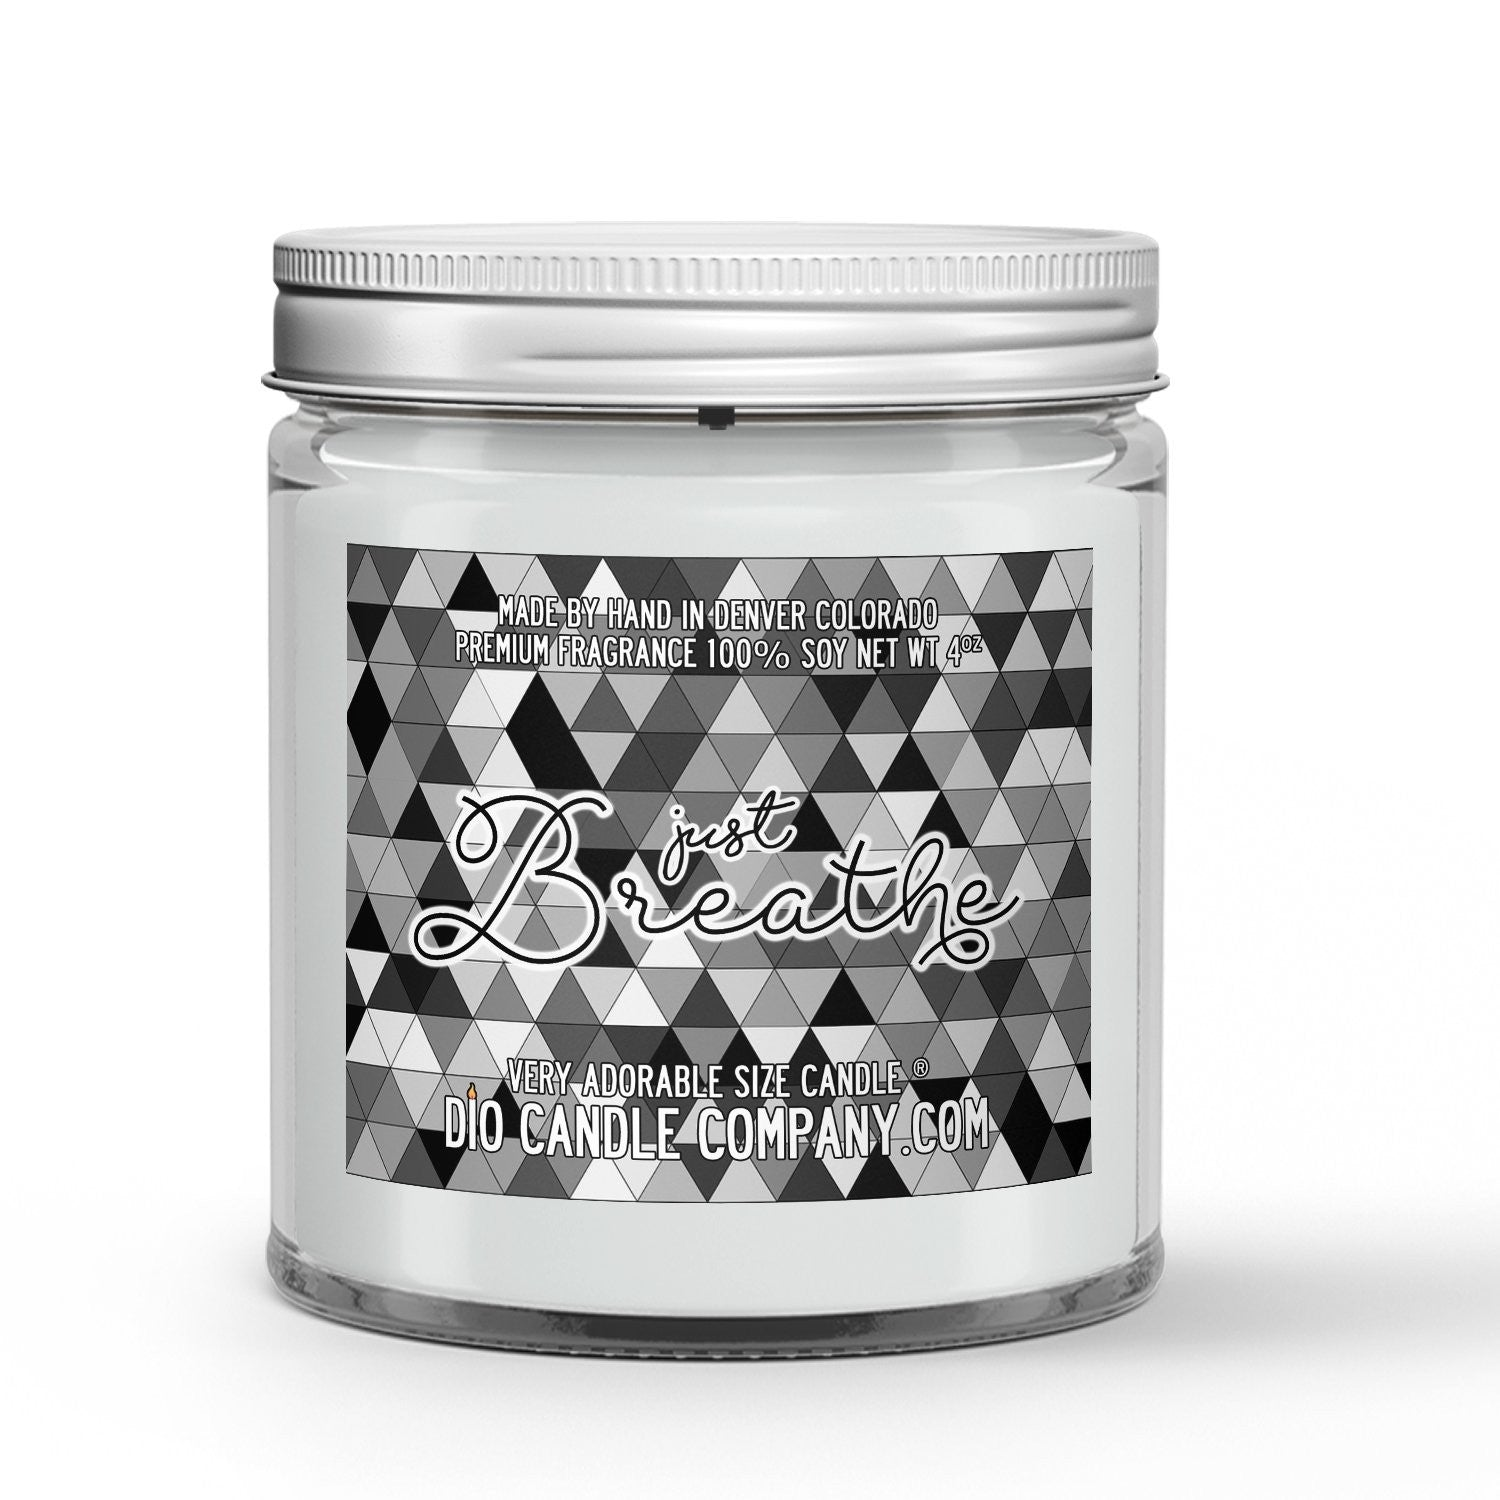 Just Breathe Candle - White Tea - Eucalyptus - 4oz Very Adorable Size Candle® - Dio Candle Company